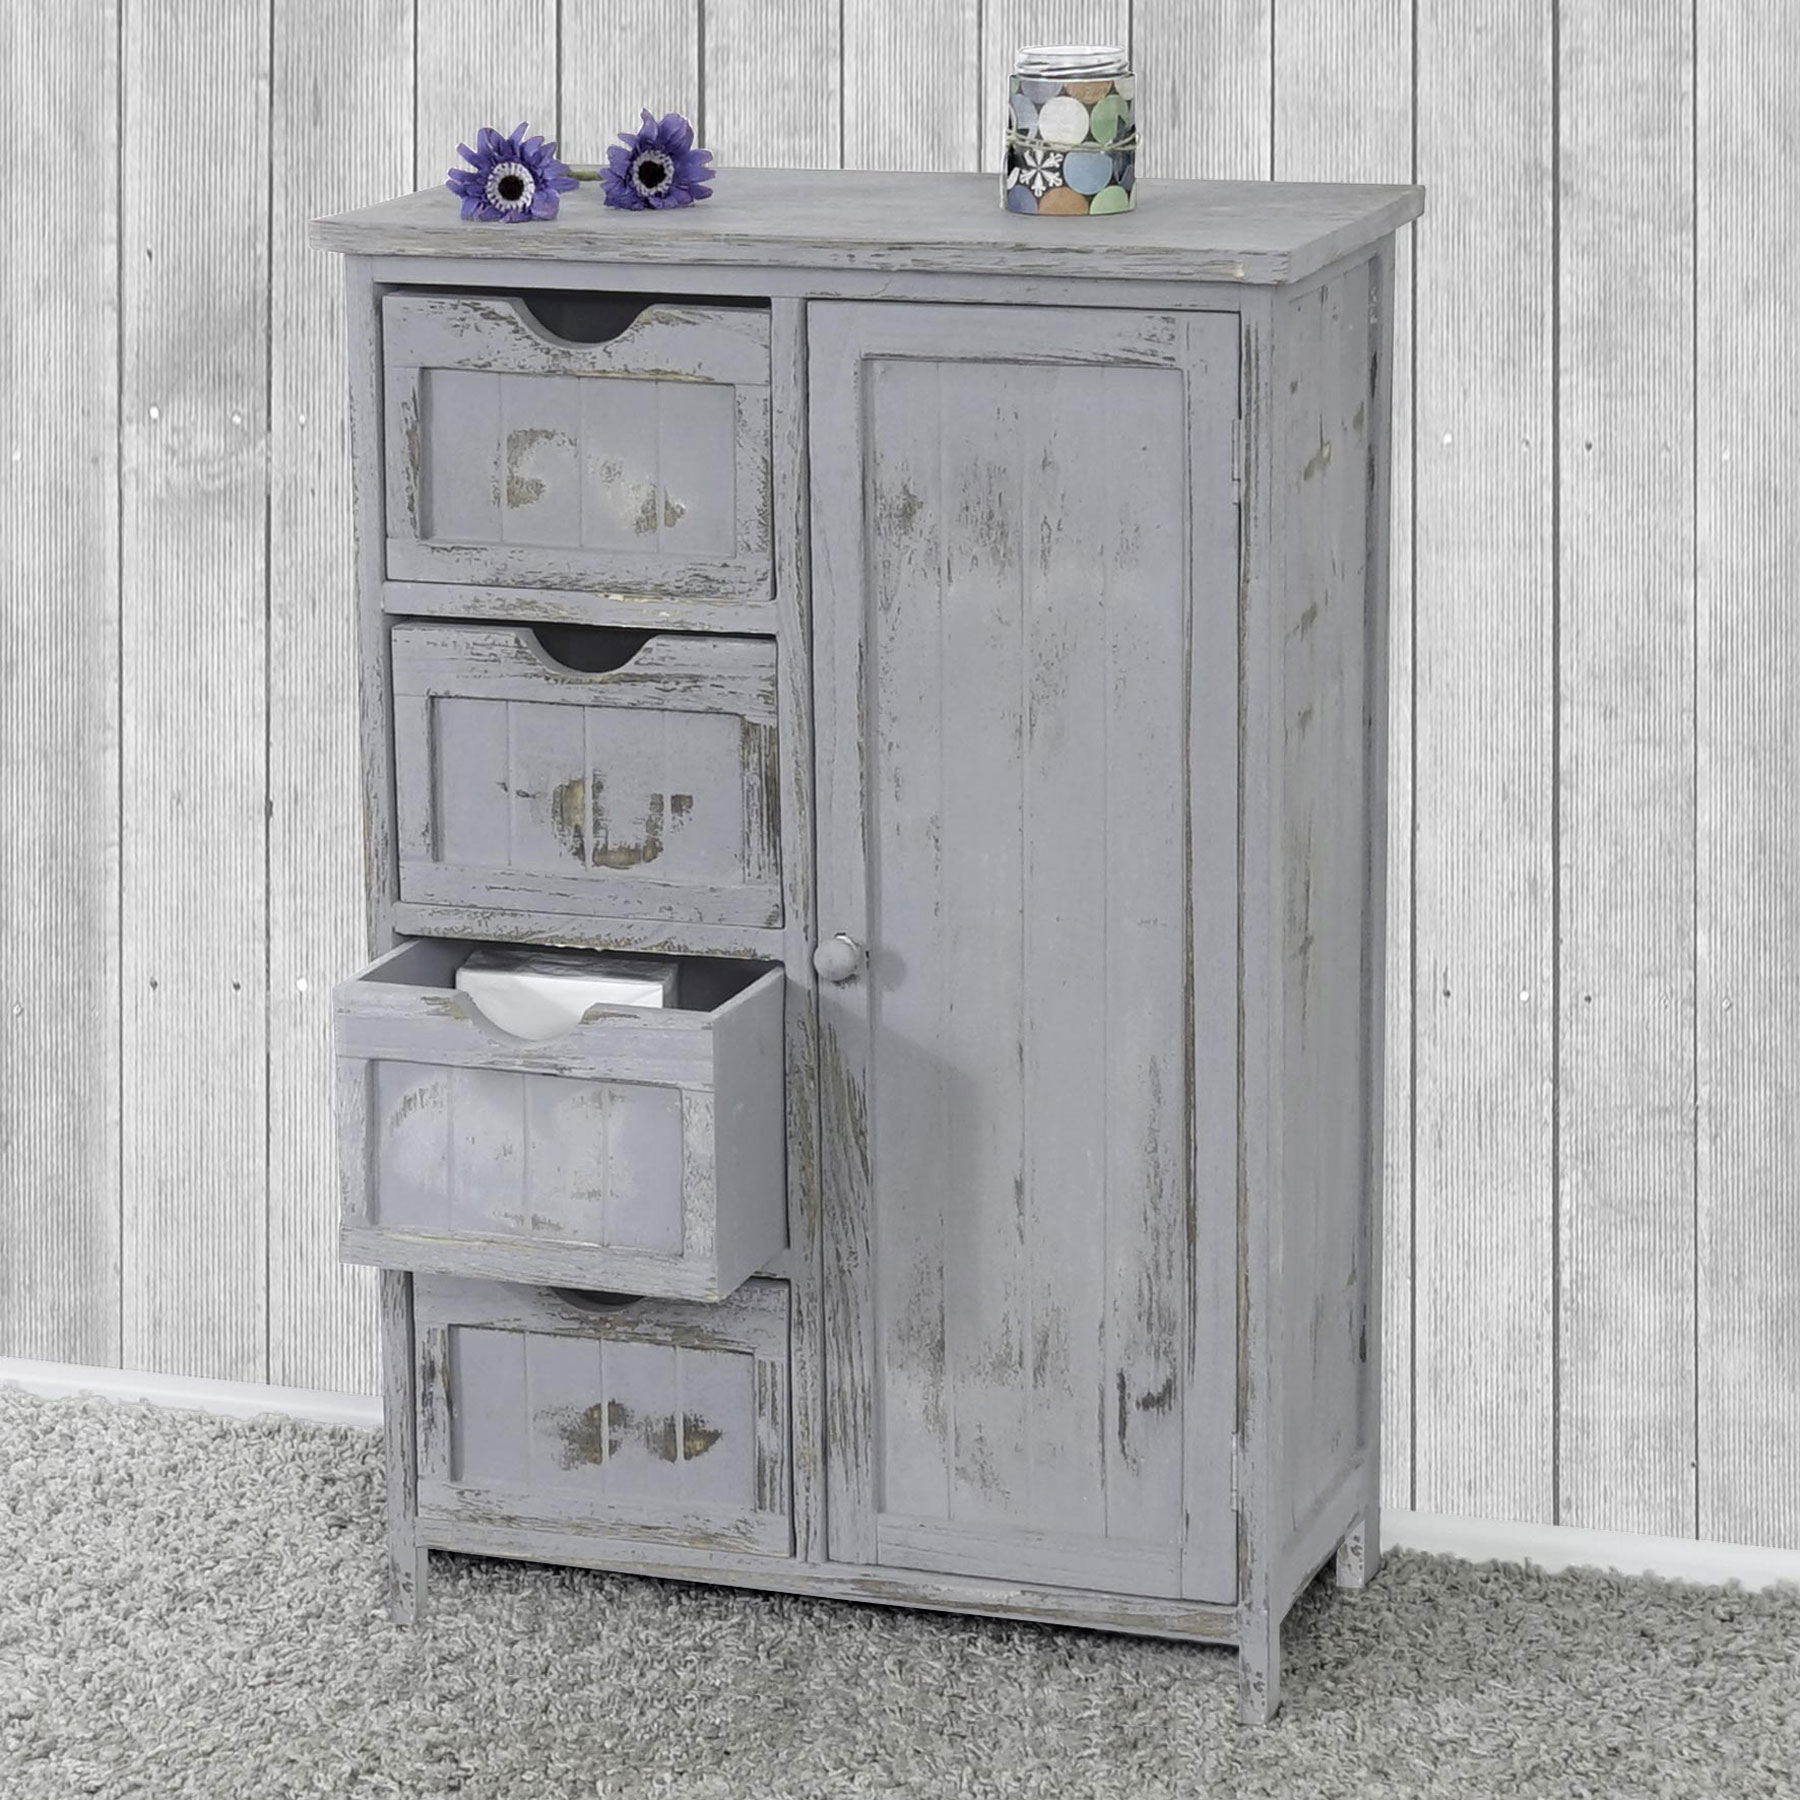 kommode schrank 82x55x30cm shabby look vintage grau braun wei ebay. Black Bedroom Furniture Sets. Home Design Ideas